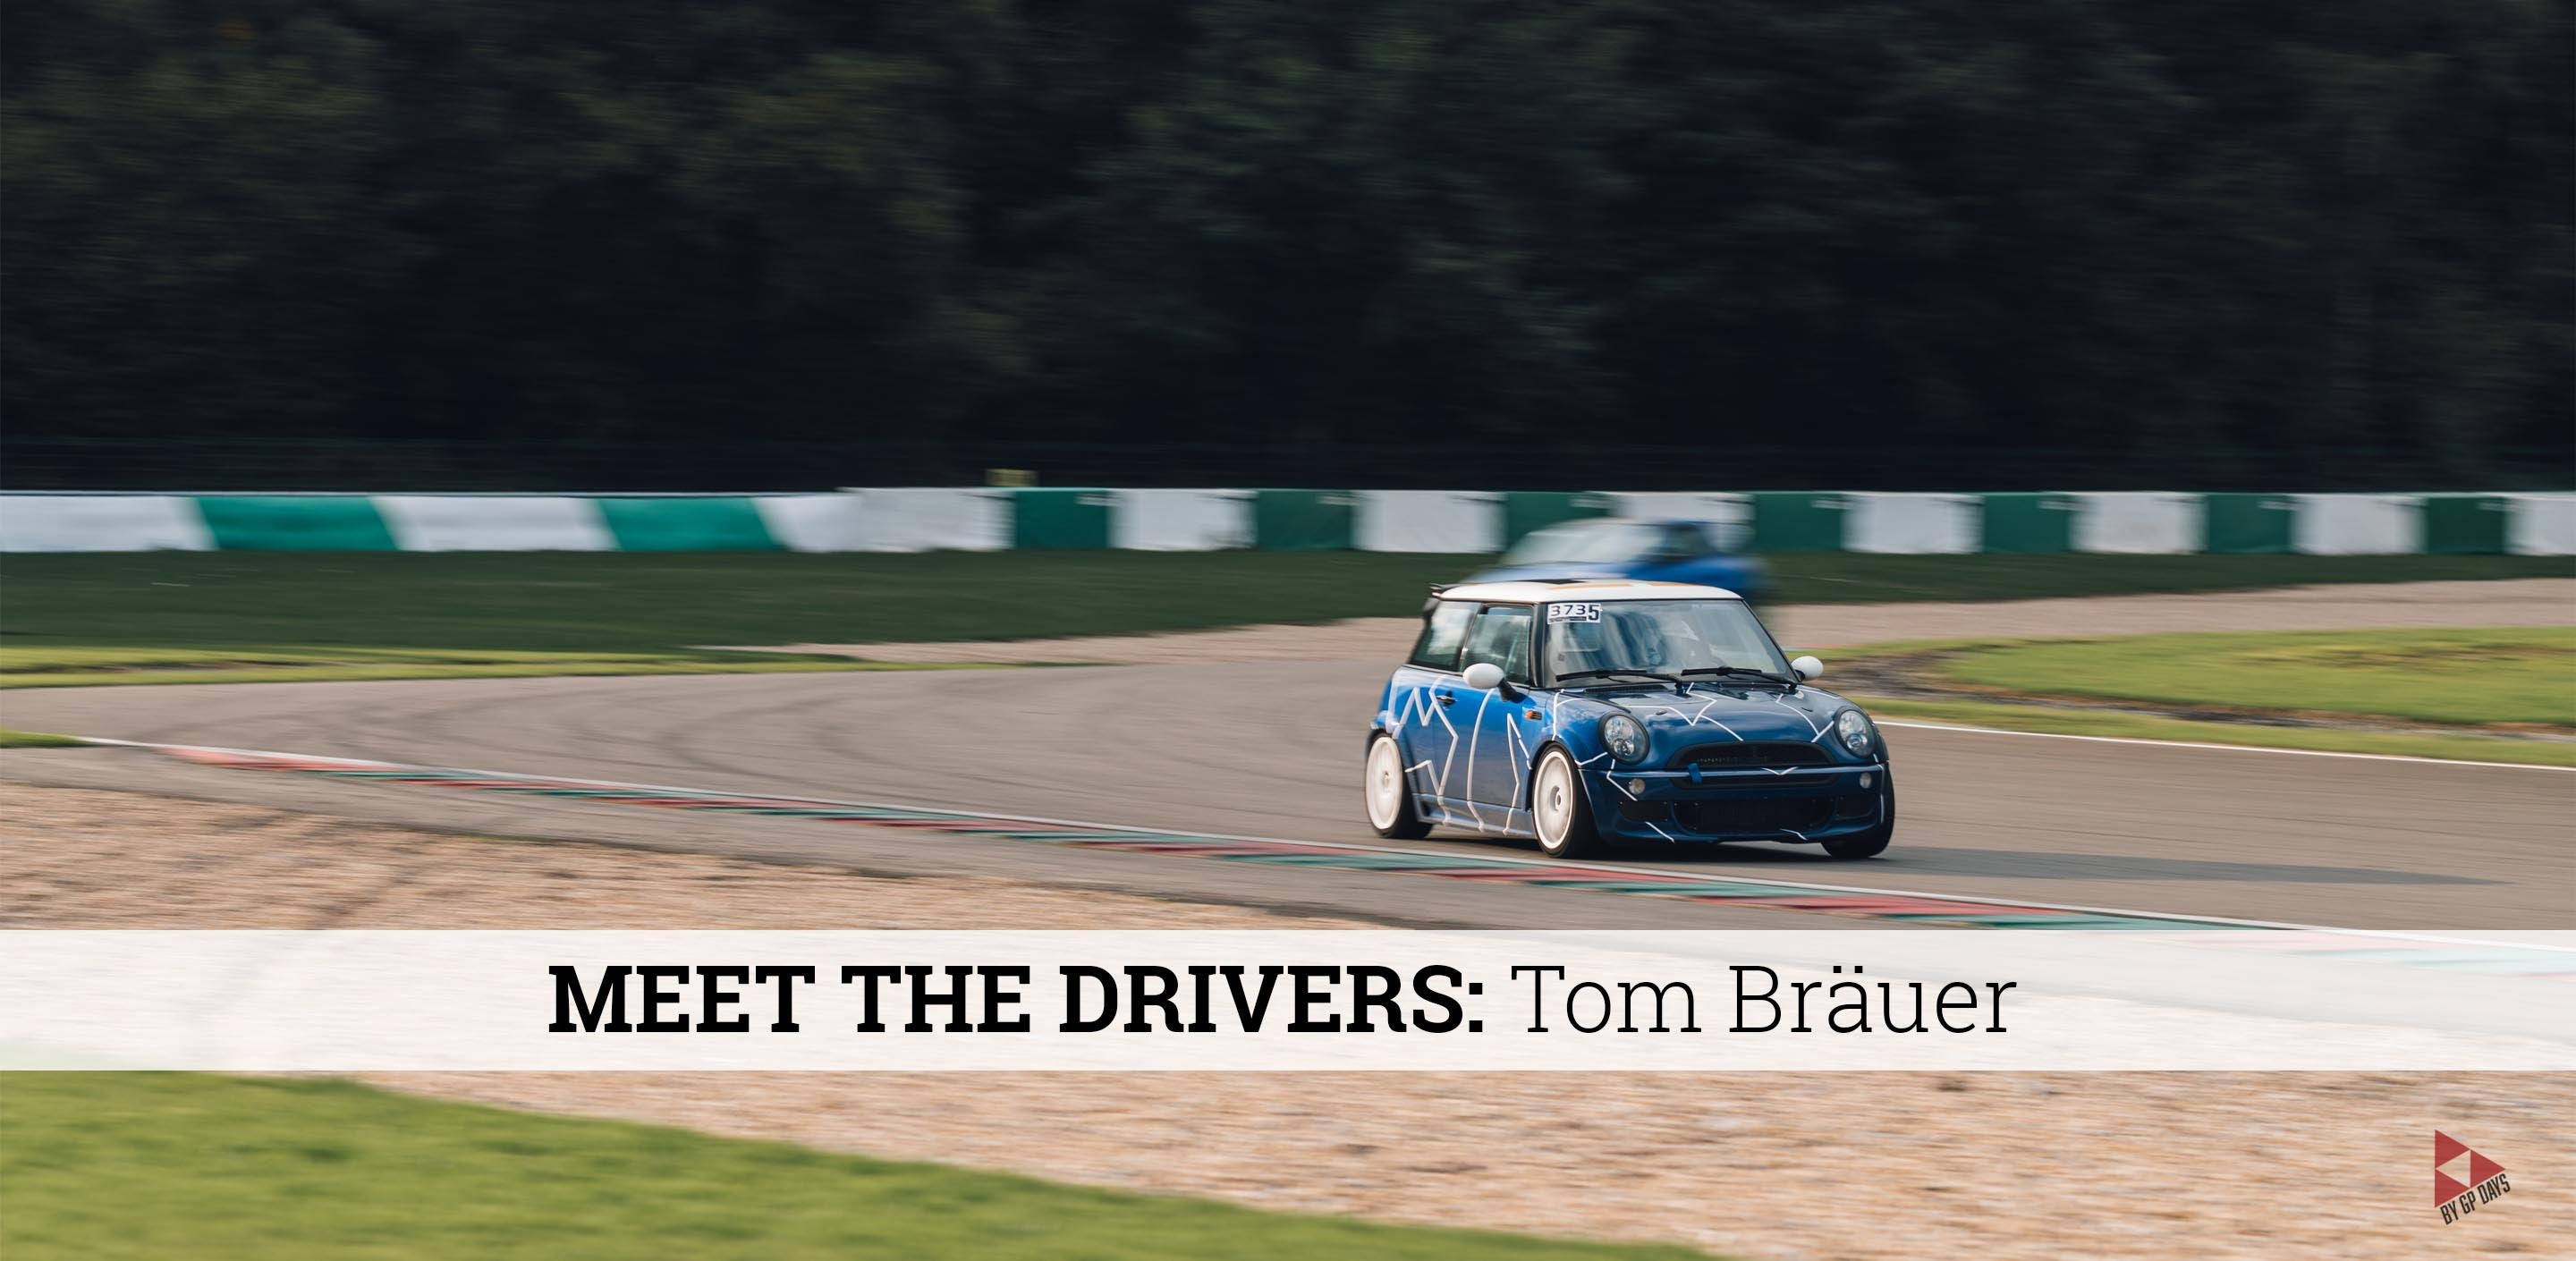 GP Days Trackdays Track Day Mini Cooper Tom Bräuer Meet the Drivers